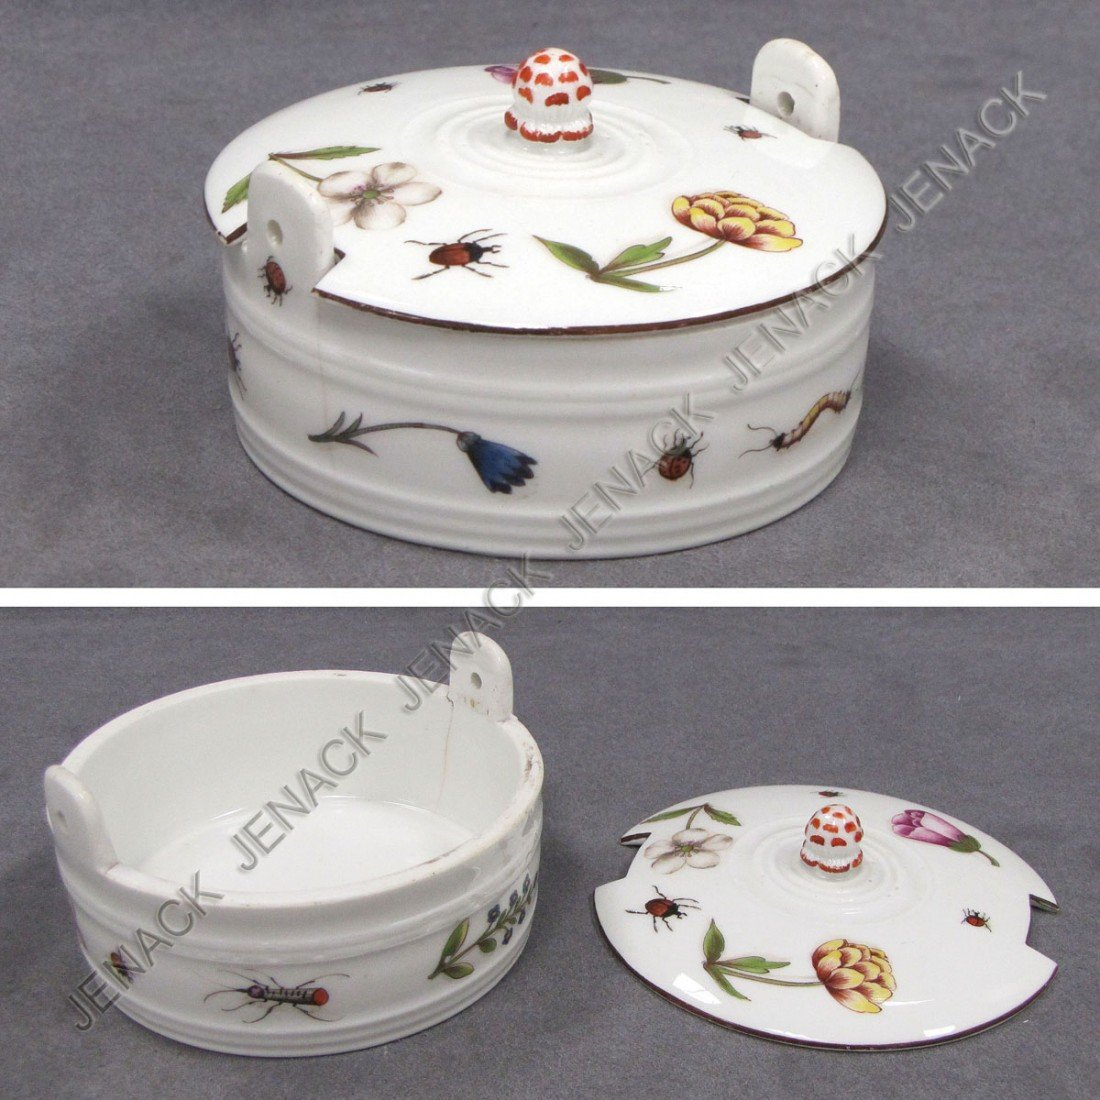 20: MEISSEN DECORATED PORCELAIN COVERED BUTTER TUB